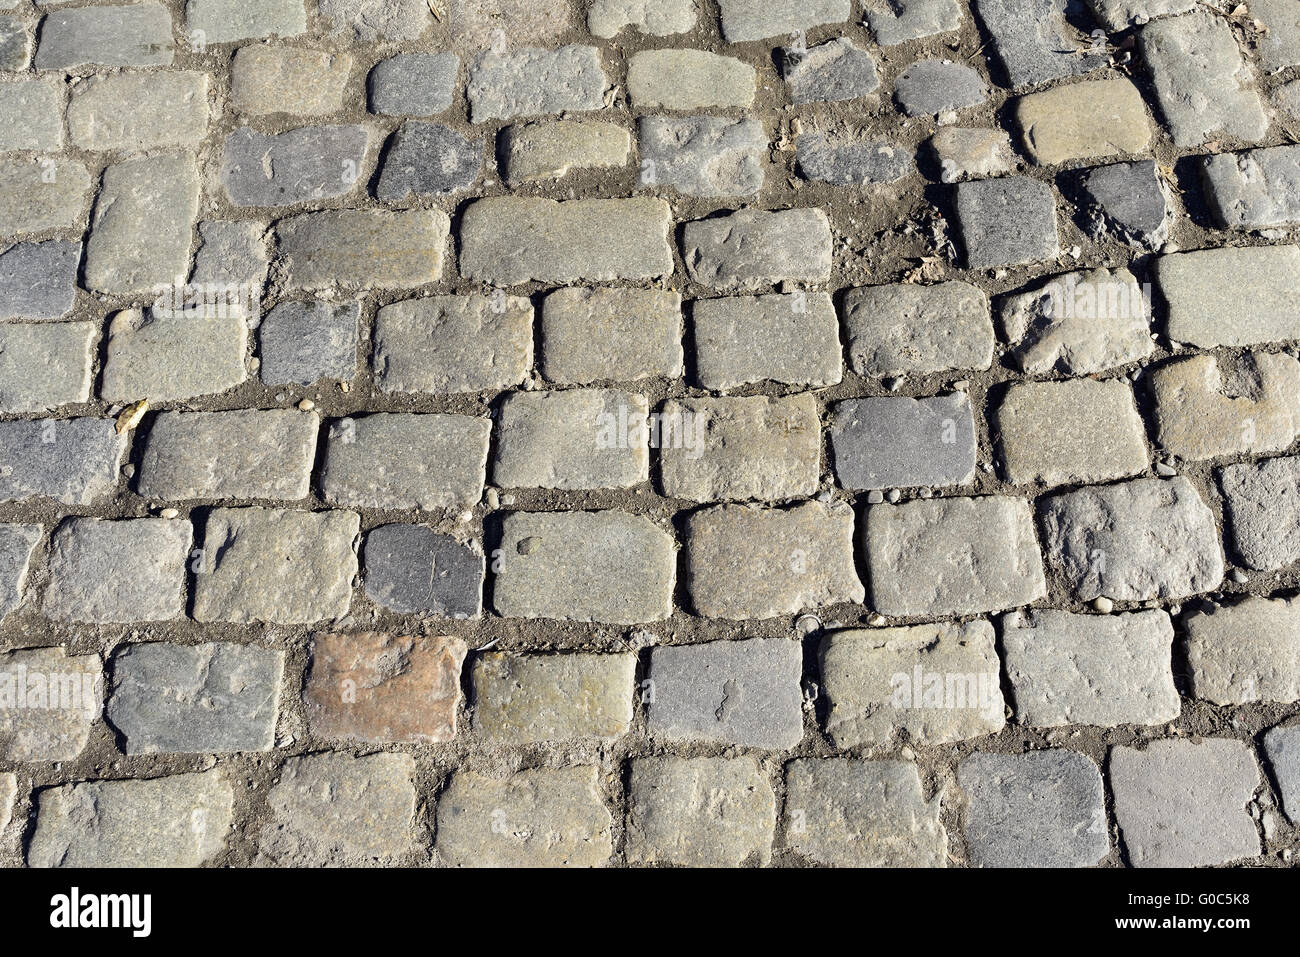 Cobblestone pavement - Stock Image